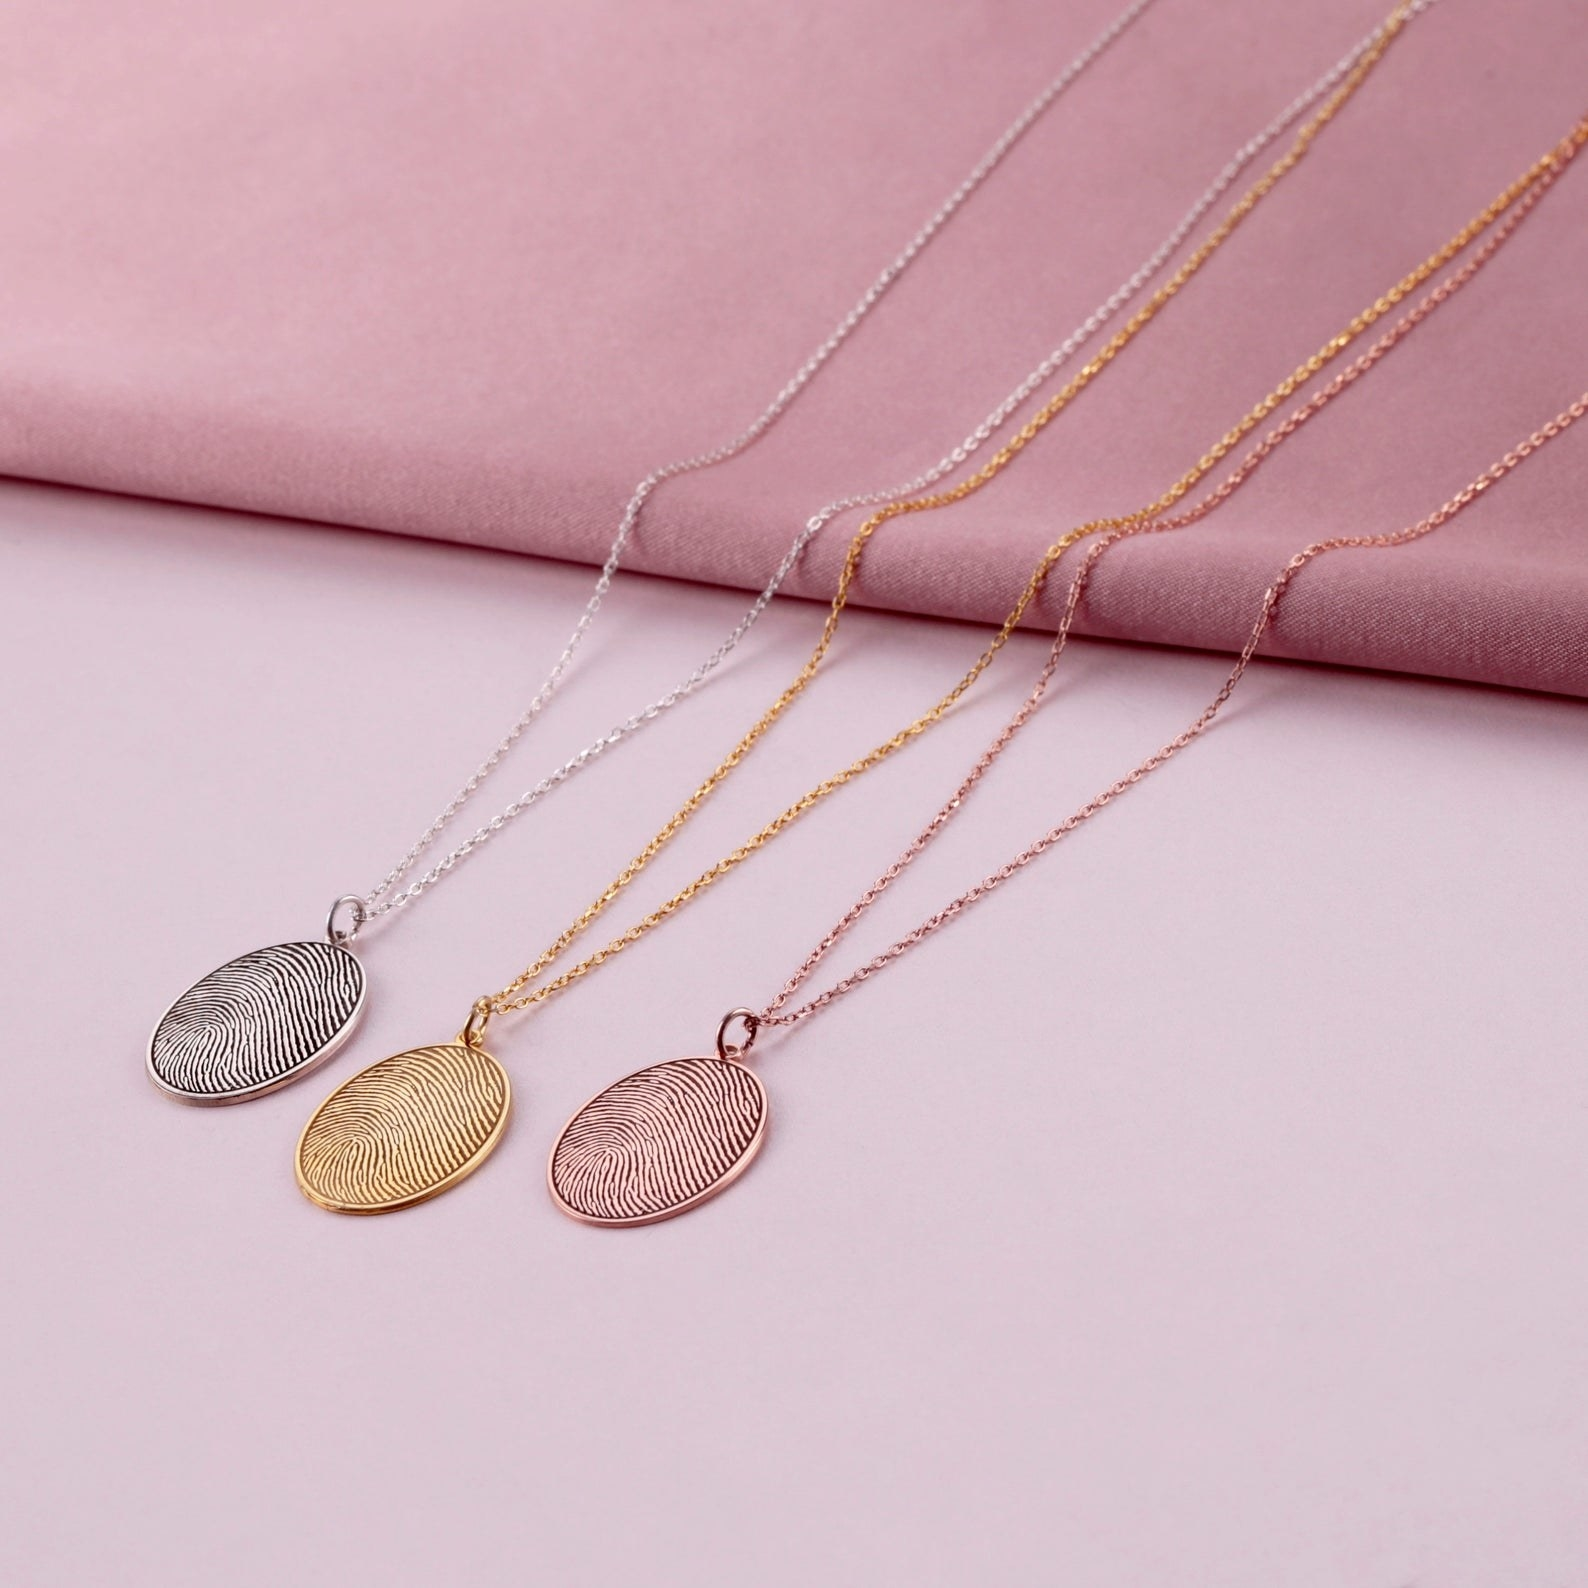 The necklaces in silver, gold, and rose gold each with a fingerprint charm on an oval disc